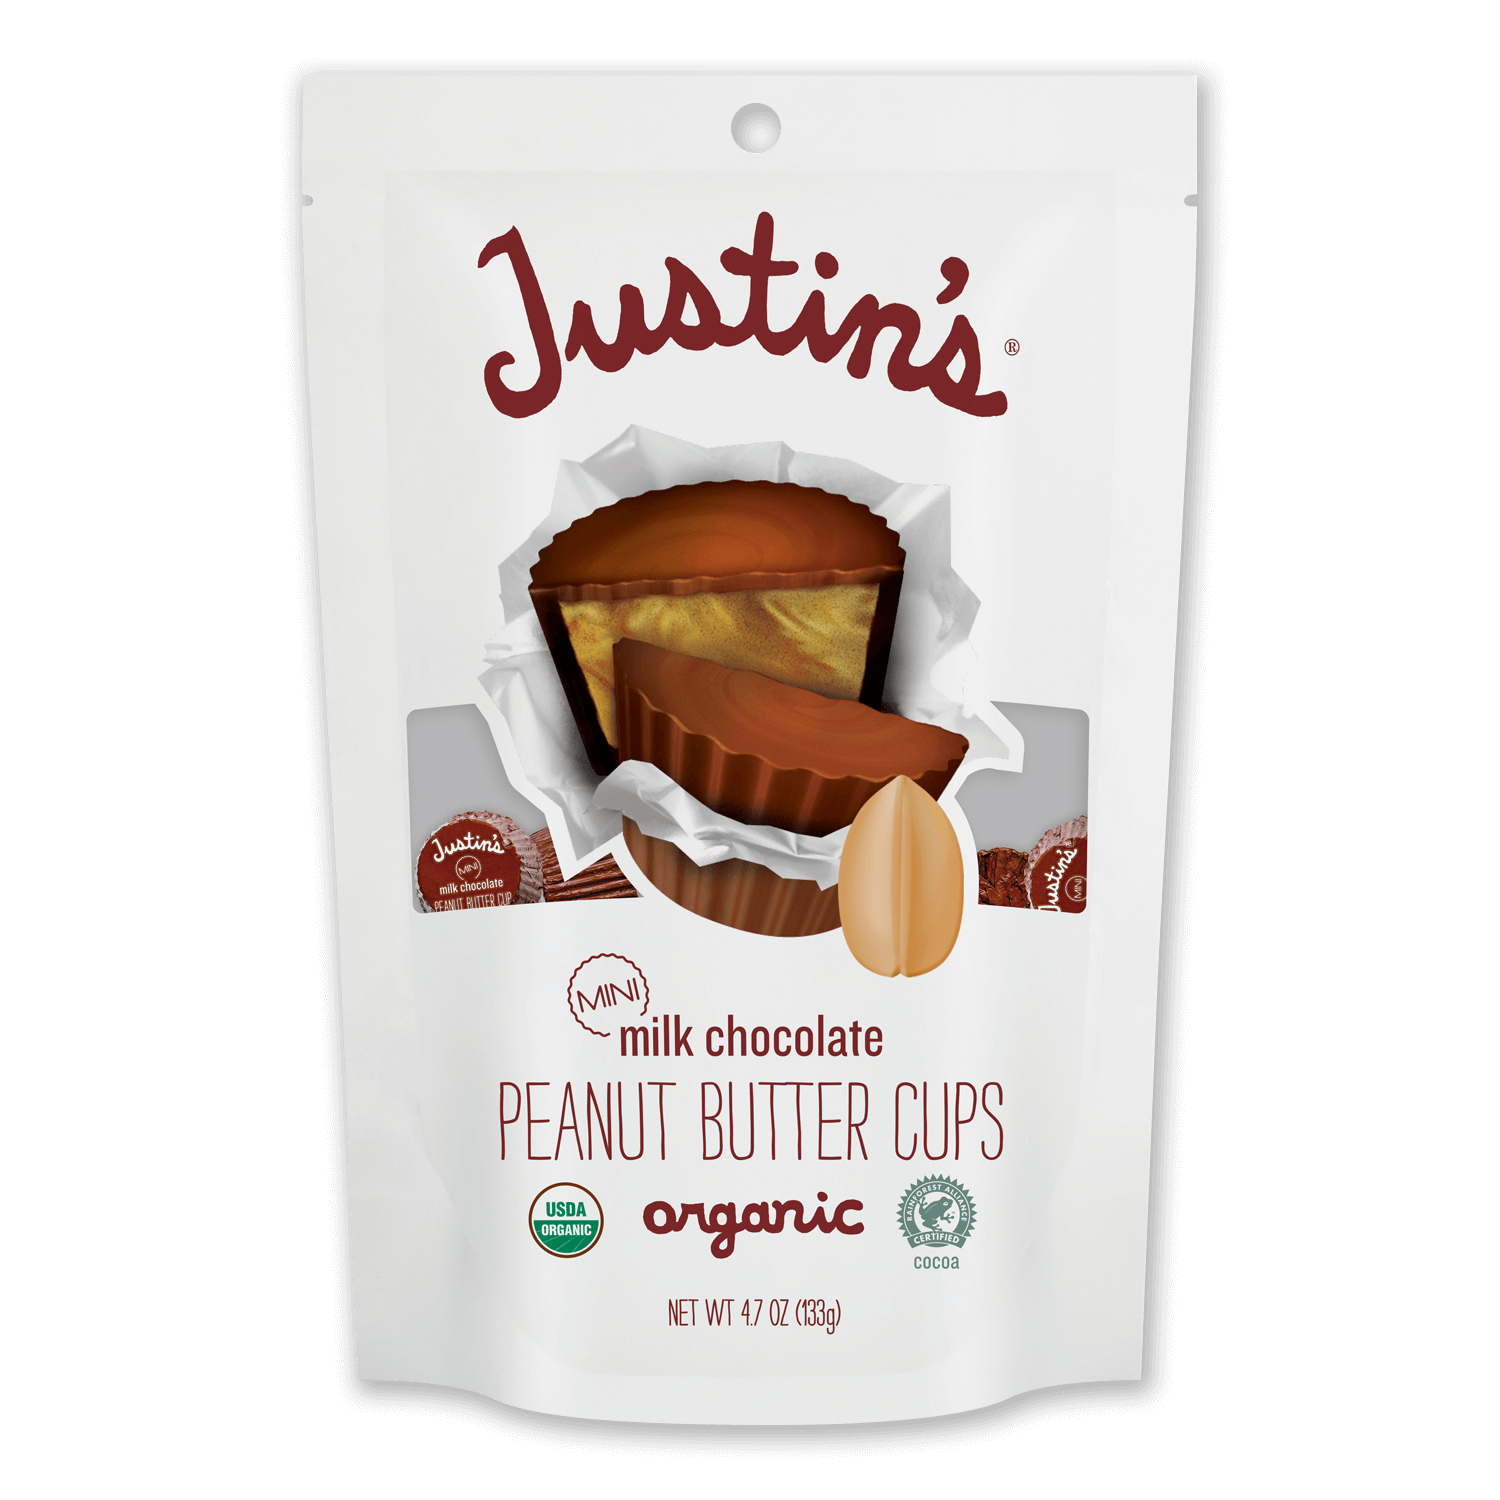 Justin's Mini Milk Chocolate Peanut Butter Cups pack 4.7 oz.